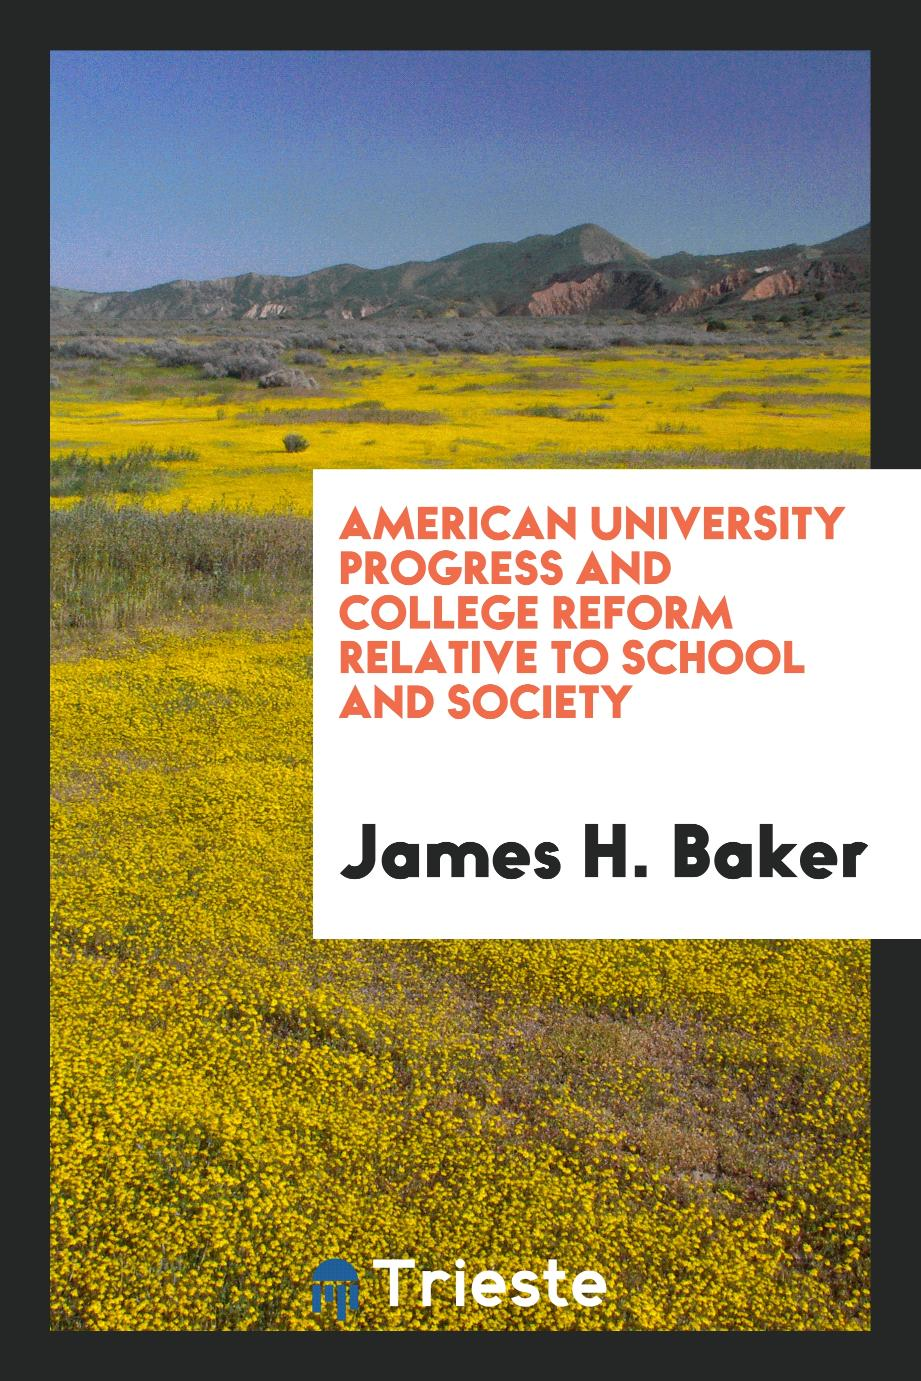 American university progress and college reform relative to school and society